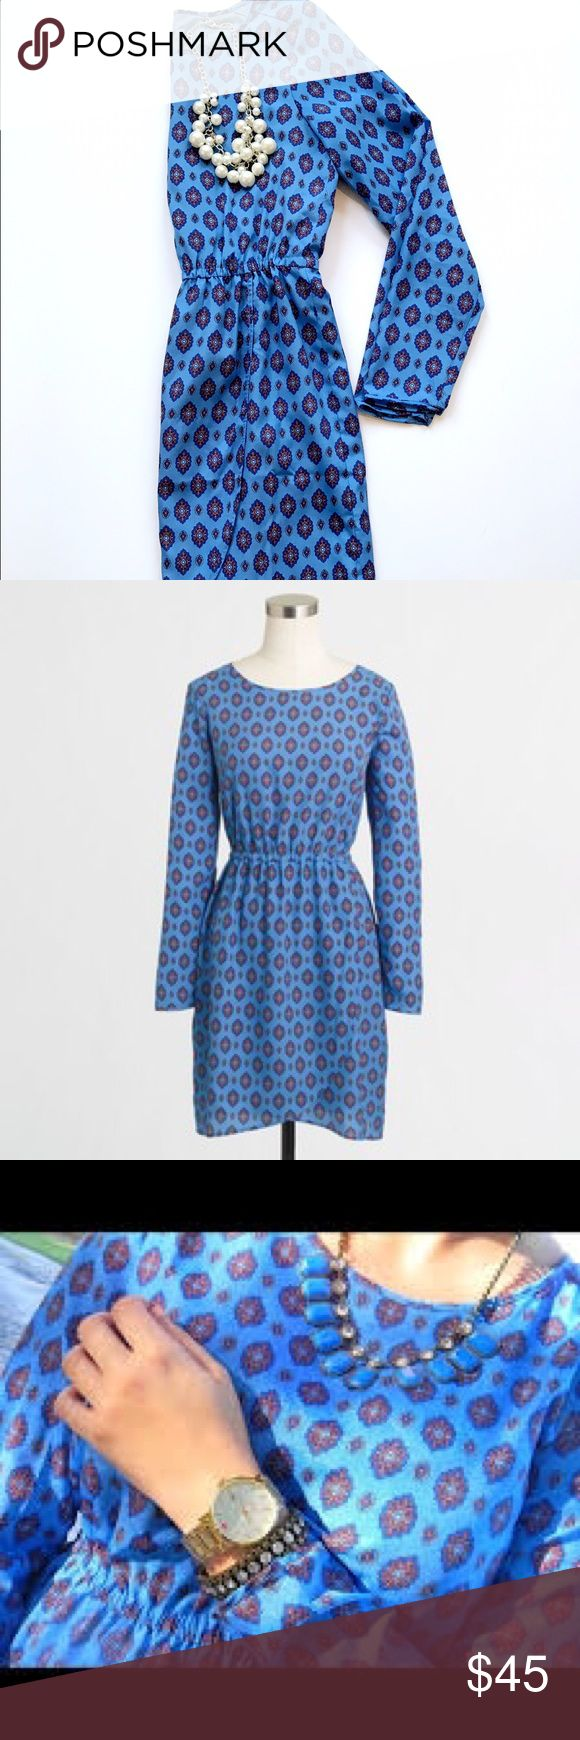 J. Crew Factory Tulip Hem Dress love this dress! Gorgeous medallion paisley print on an ever more gorgeous blue! Size tag has been cut out but I believe this dress is a 0 or XS. Materials tag is shown. J. Crew Dresses Midi